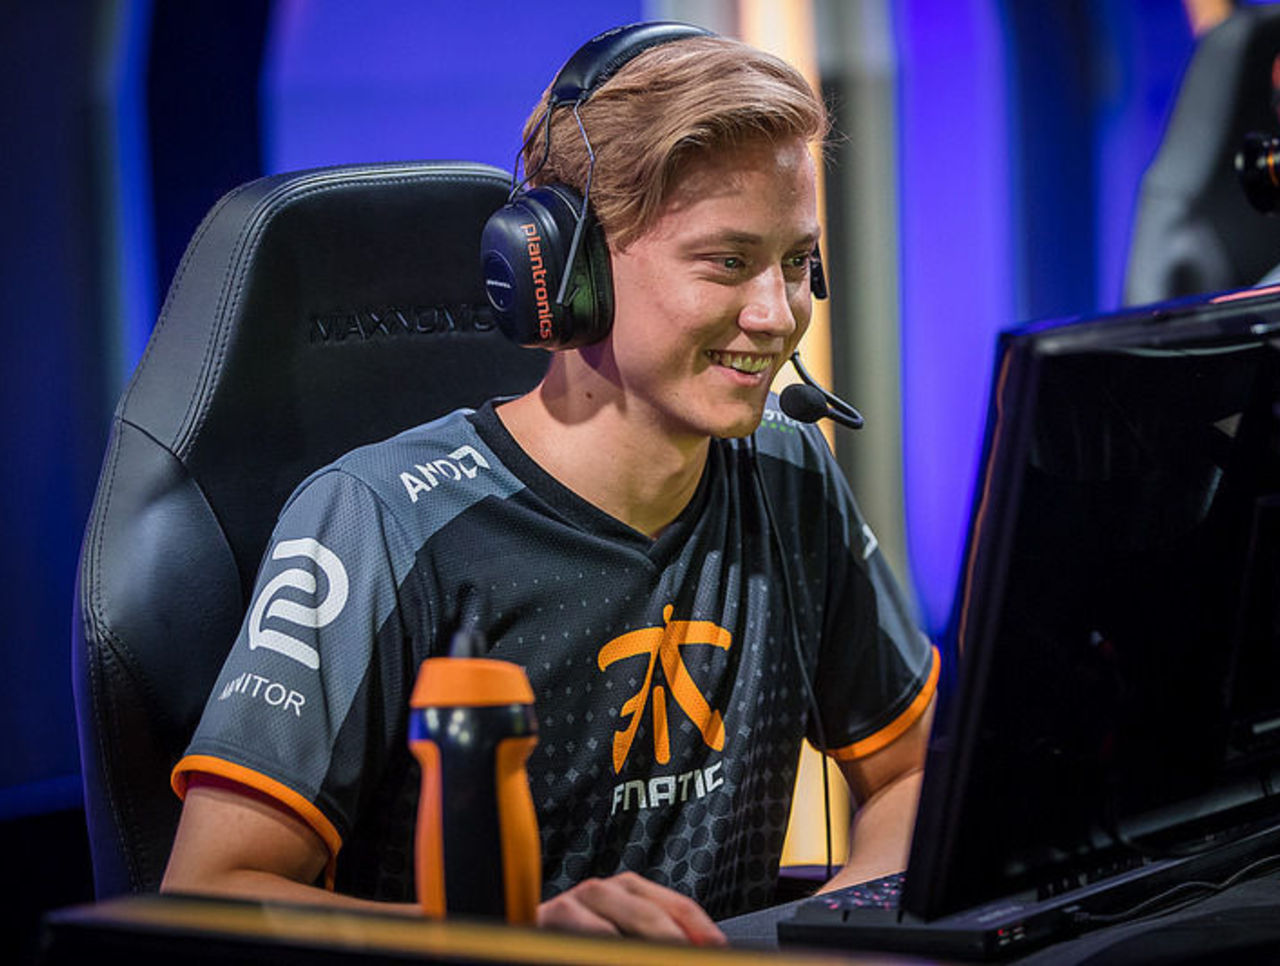 Is Rekkles going to retire?